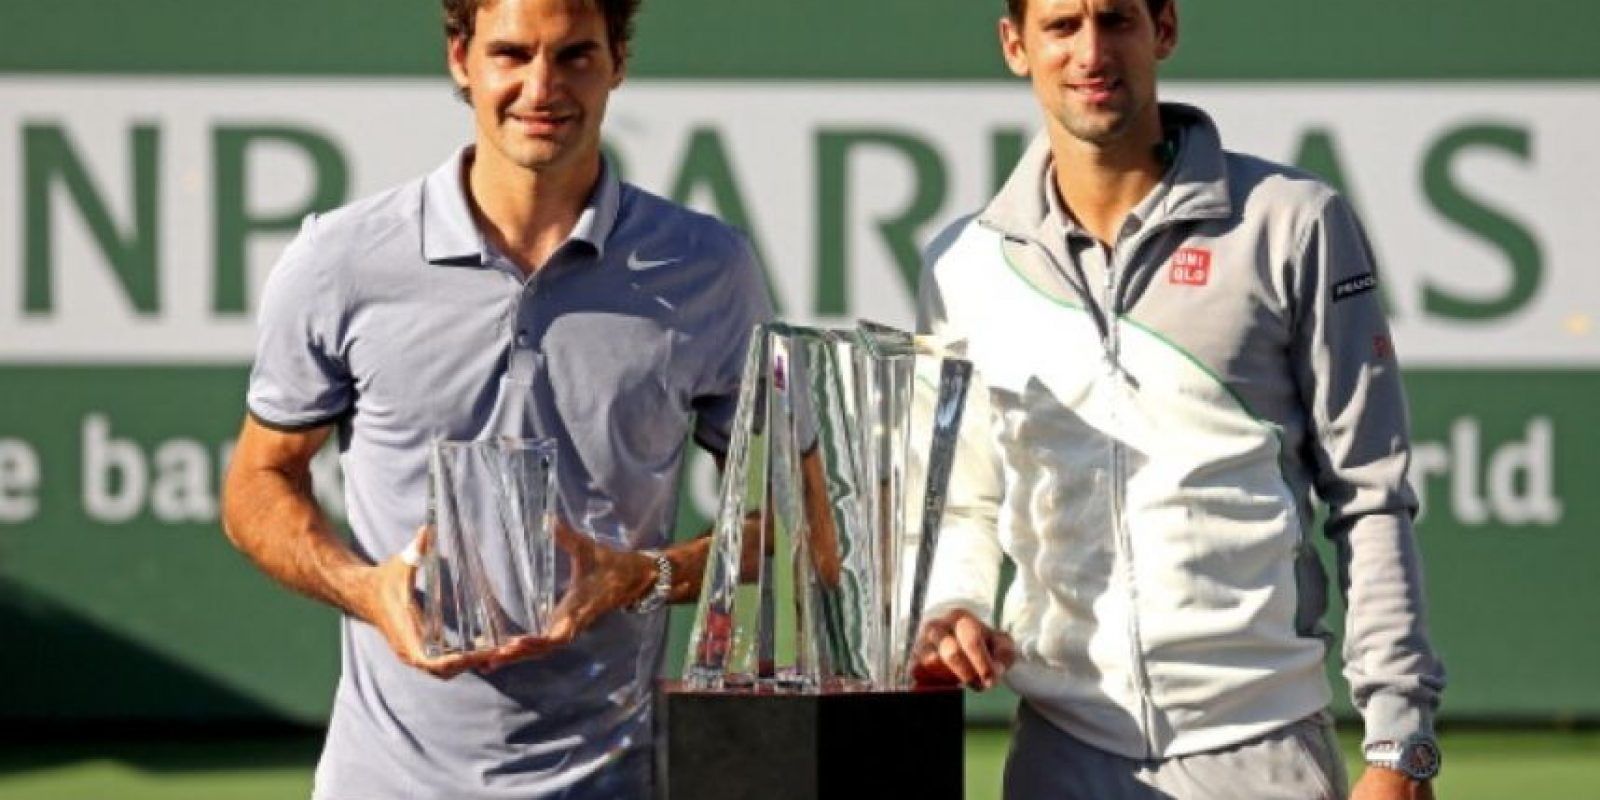 1- Masters 1000 de Indian Wells 2014. Foto: Getty Images